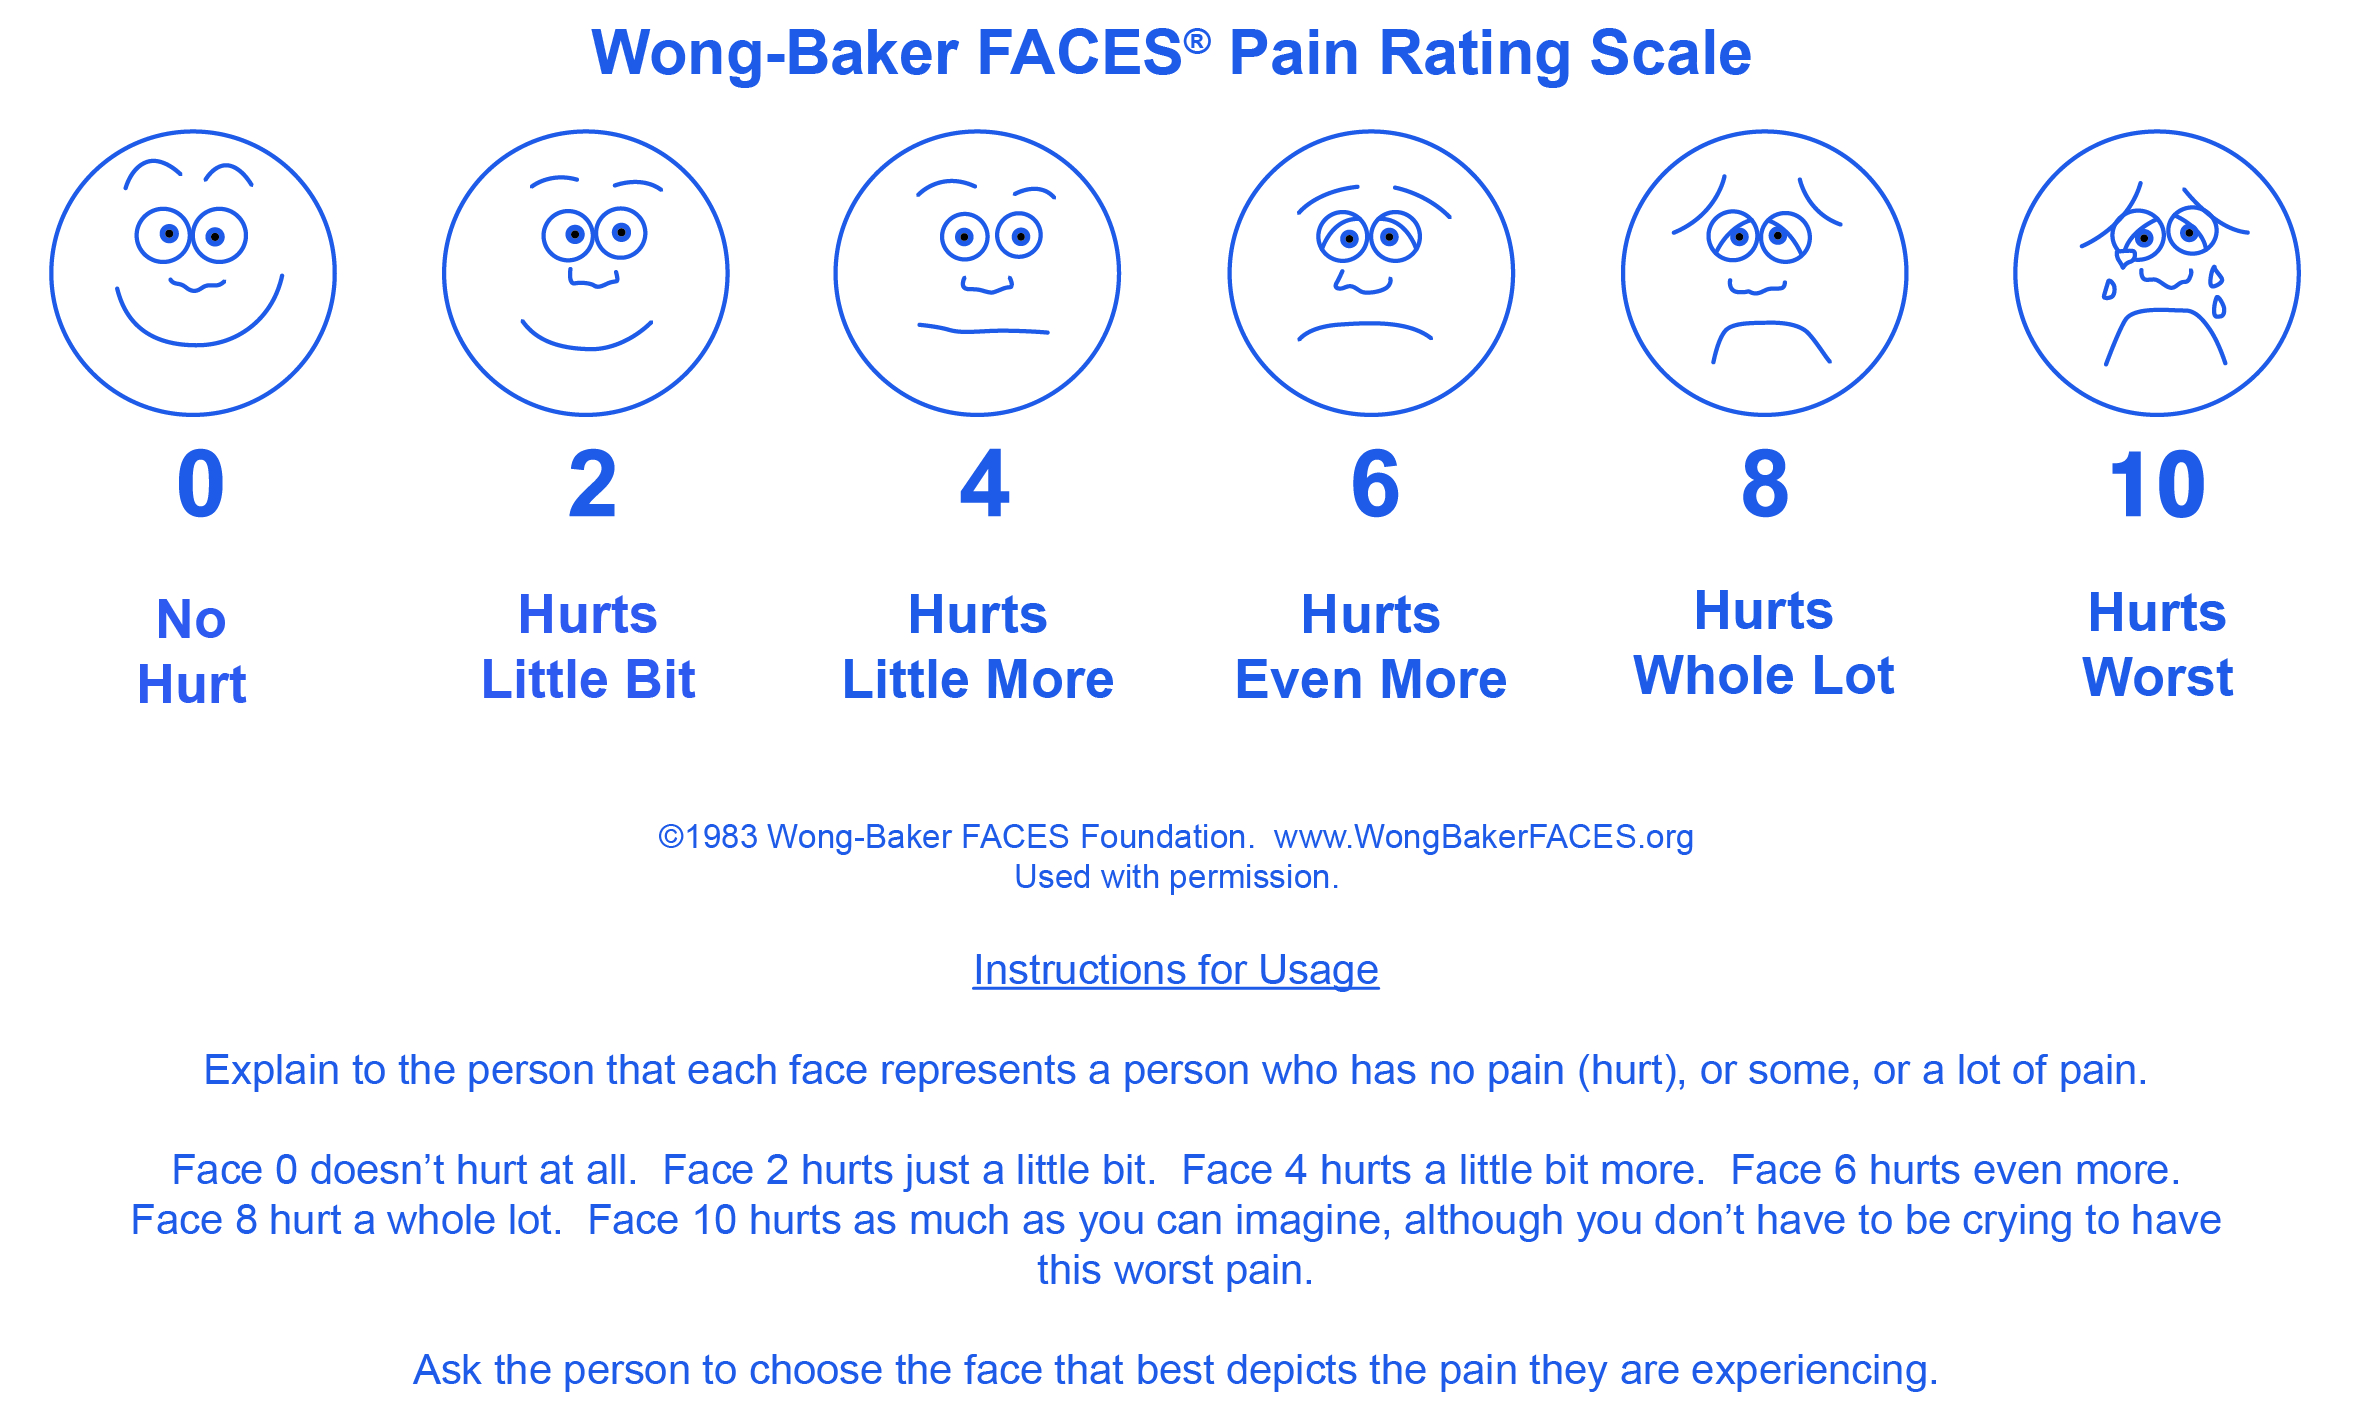 photograph relating to Pain Scale Chart Printable named Recommendations for Retain the services of - Wong-Baker FACES Base